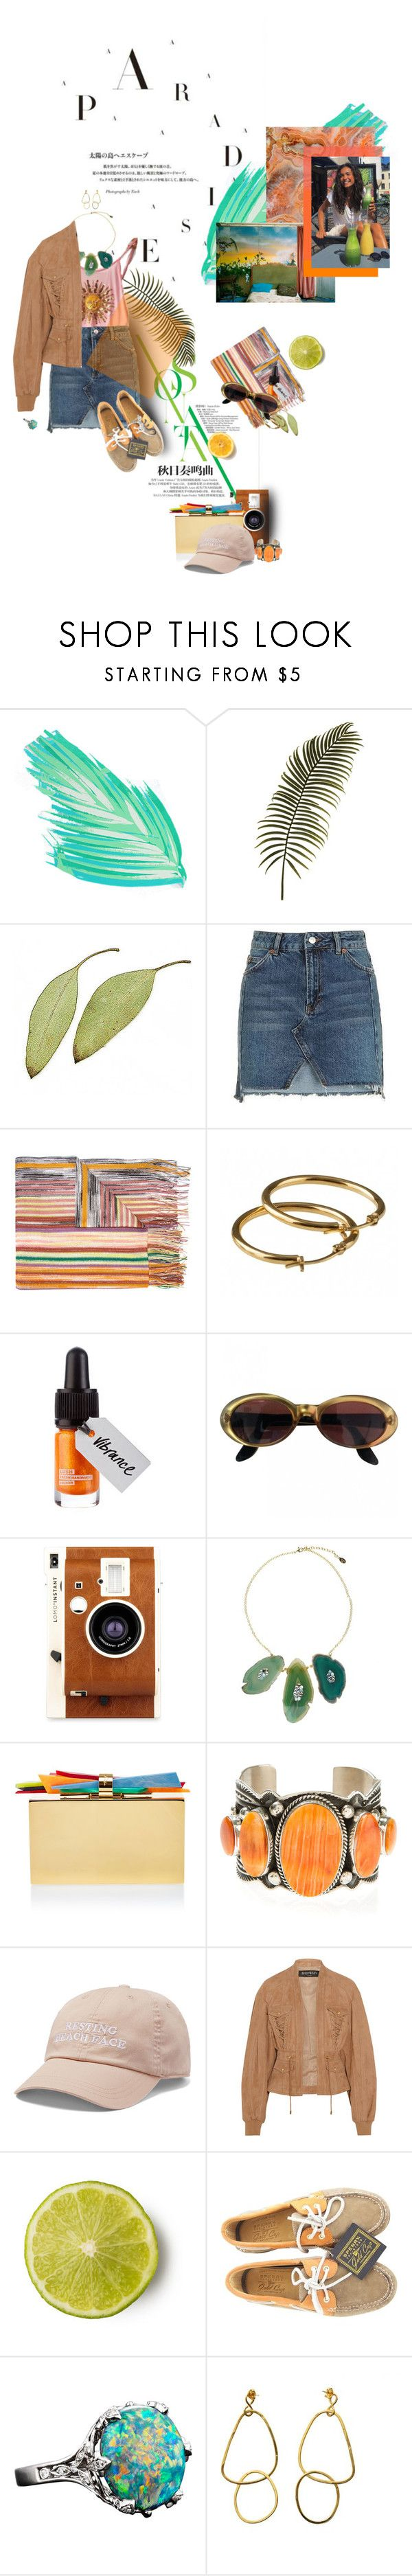 """I've got sol"" by ducktape ❤ liked on Polyvore featuring Matthew Williamson, Trilogy, Topshop, Missoni, Gucci, LØMO, Sparkling Sage, Edie Parker, Harpo and Victoria's Secret"